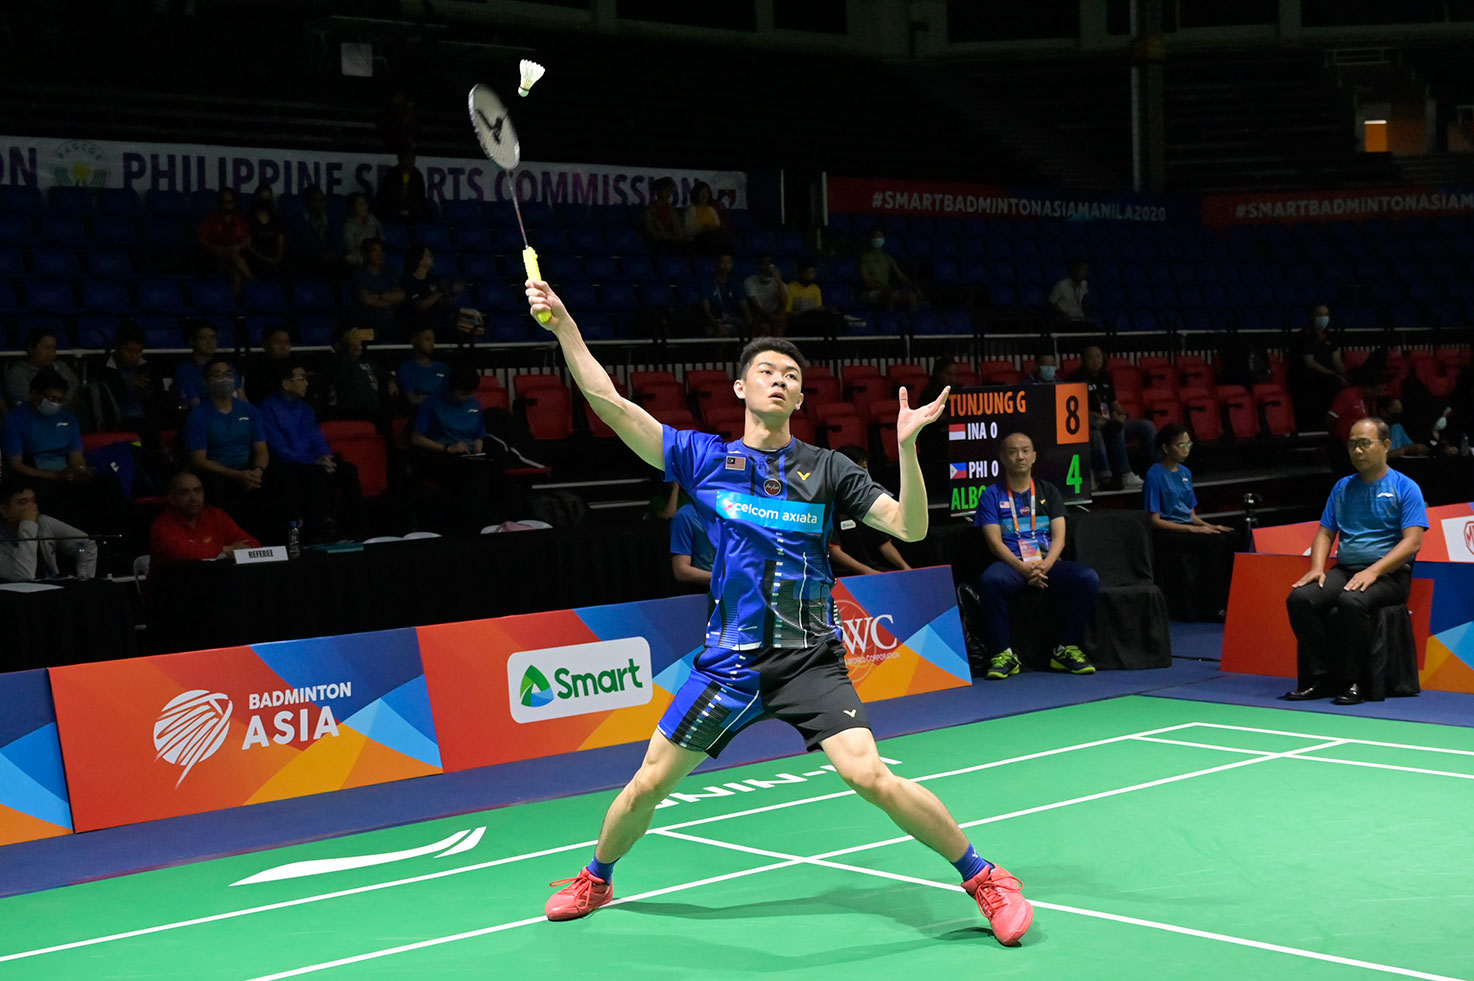 Badminton-Asia-Team-Championships-Mens-Malaysia-def-Kazahkstan-Lee-Zii-Jia Indonesia drops Philippine women's out of Badminton Asia Team Championships 2020 Badminton Asia Team Championships Badminton News  - philippine sports news